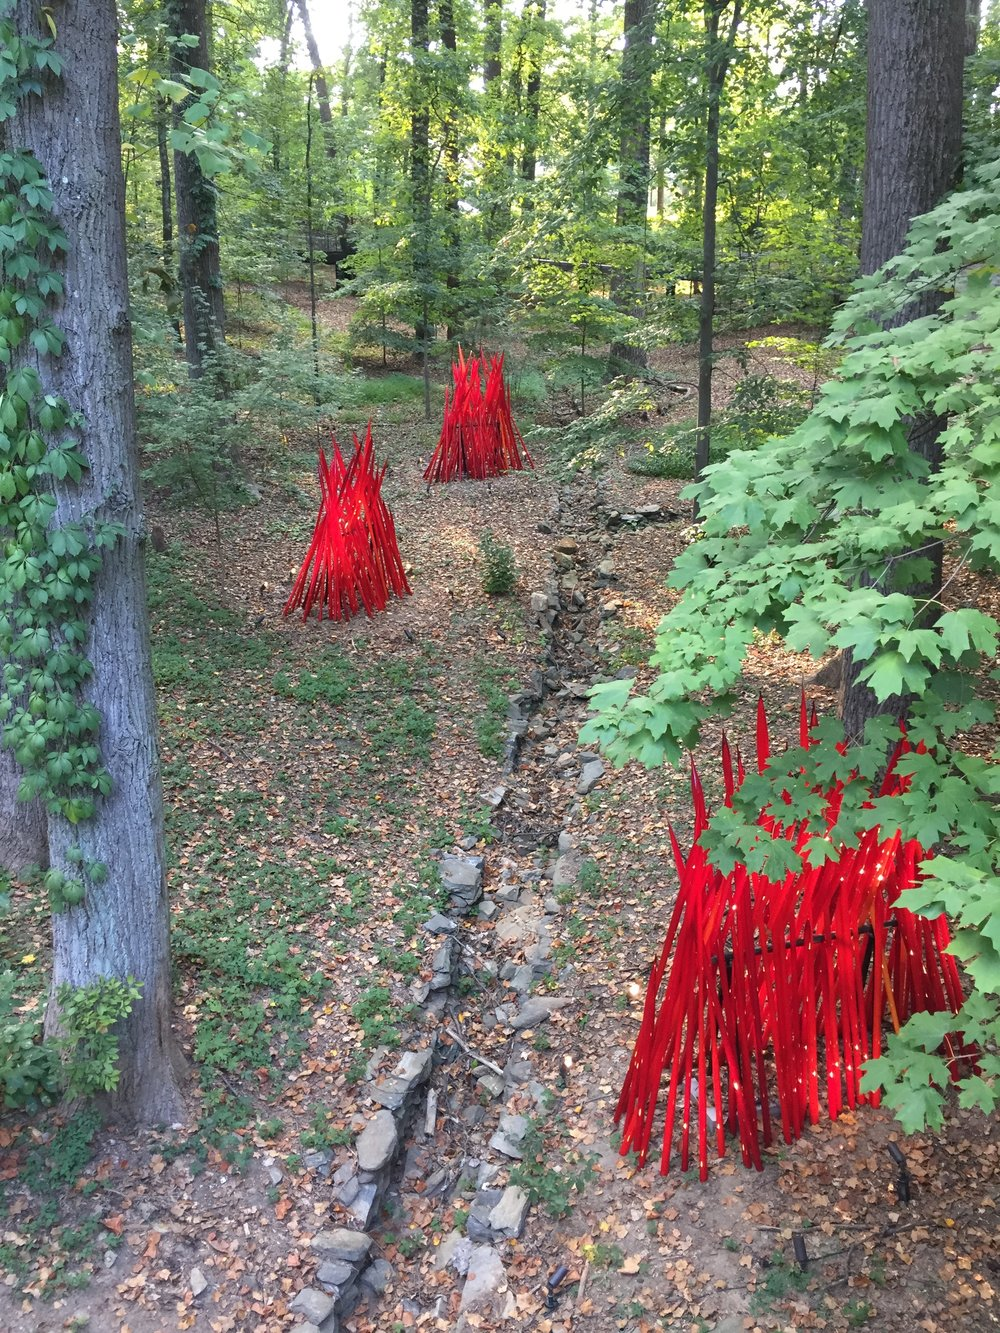 Chihuly's Red Reeds, 2014